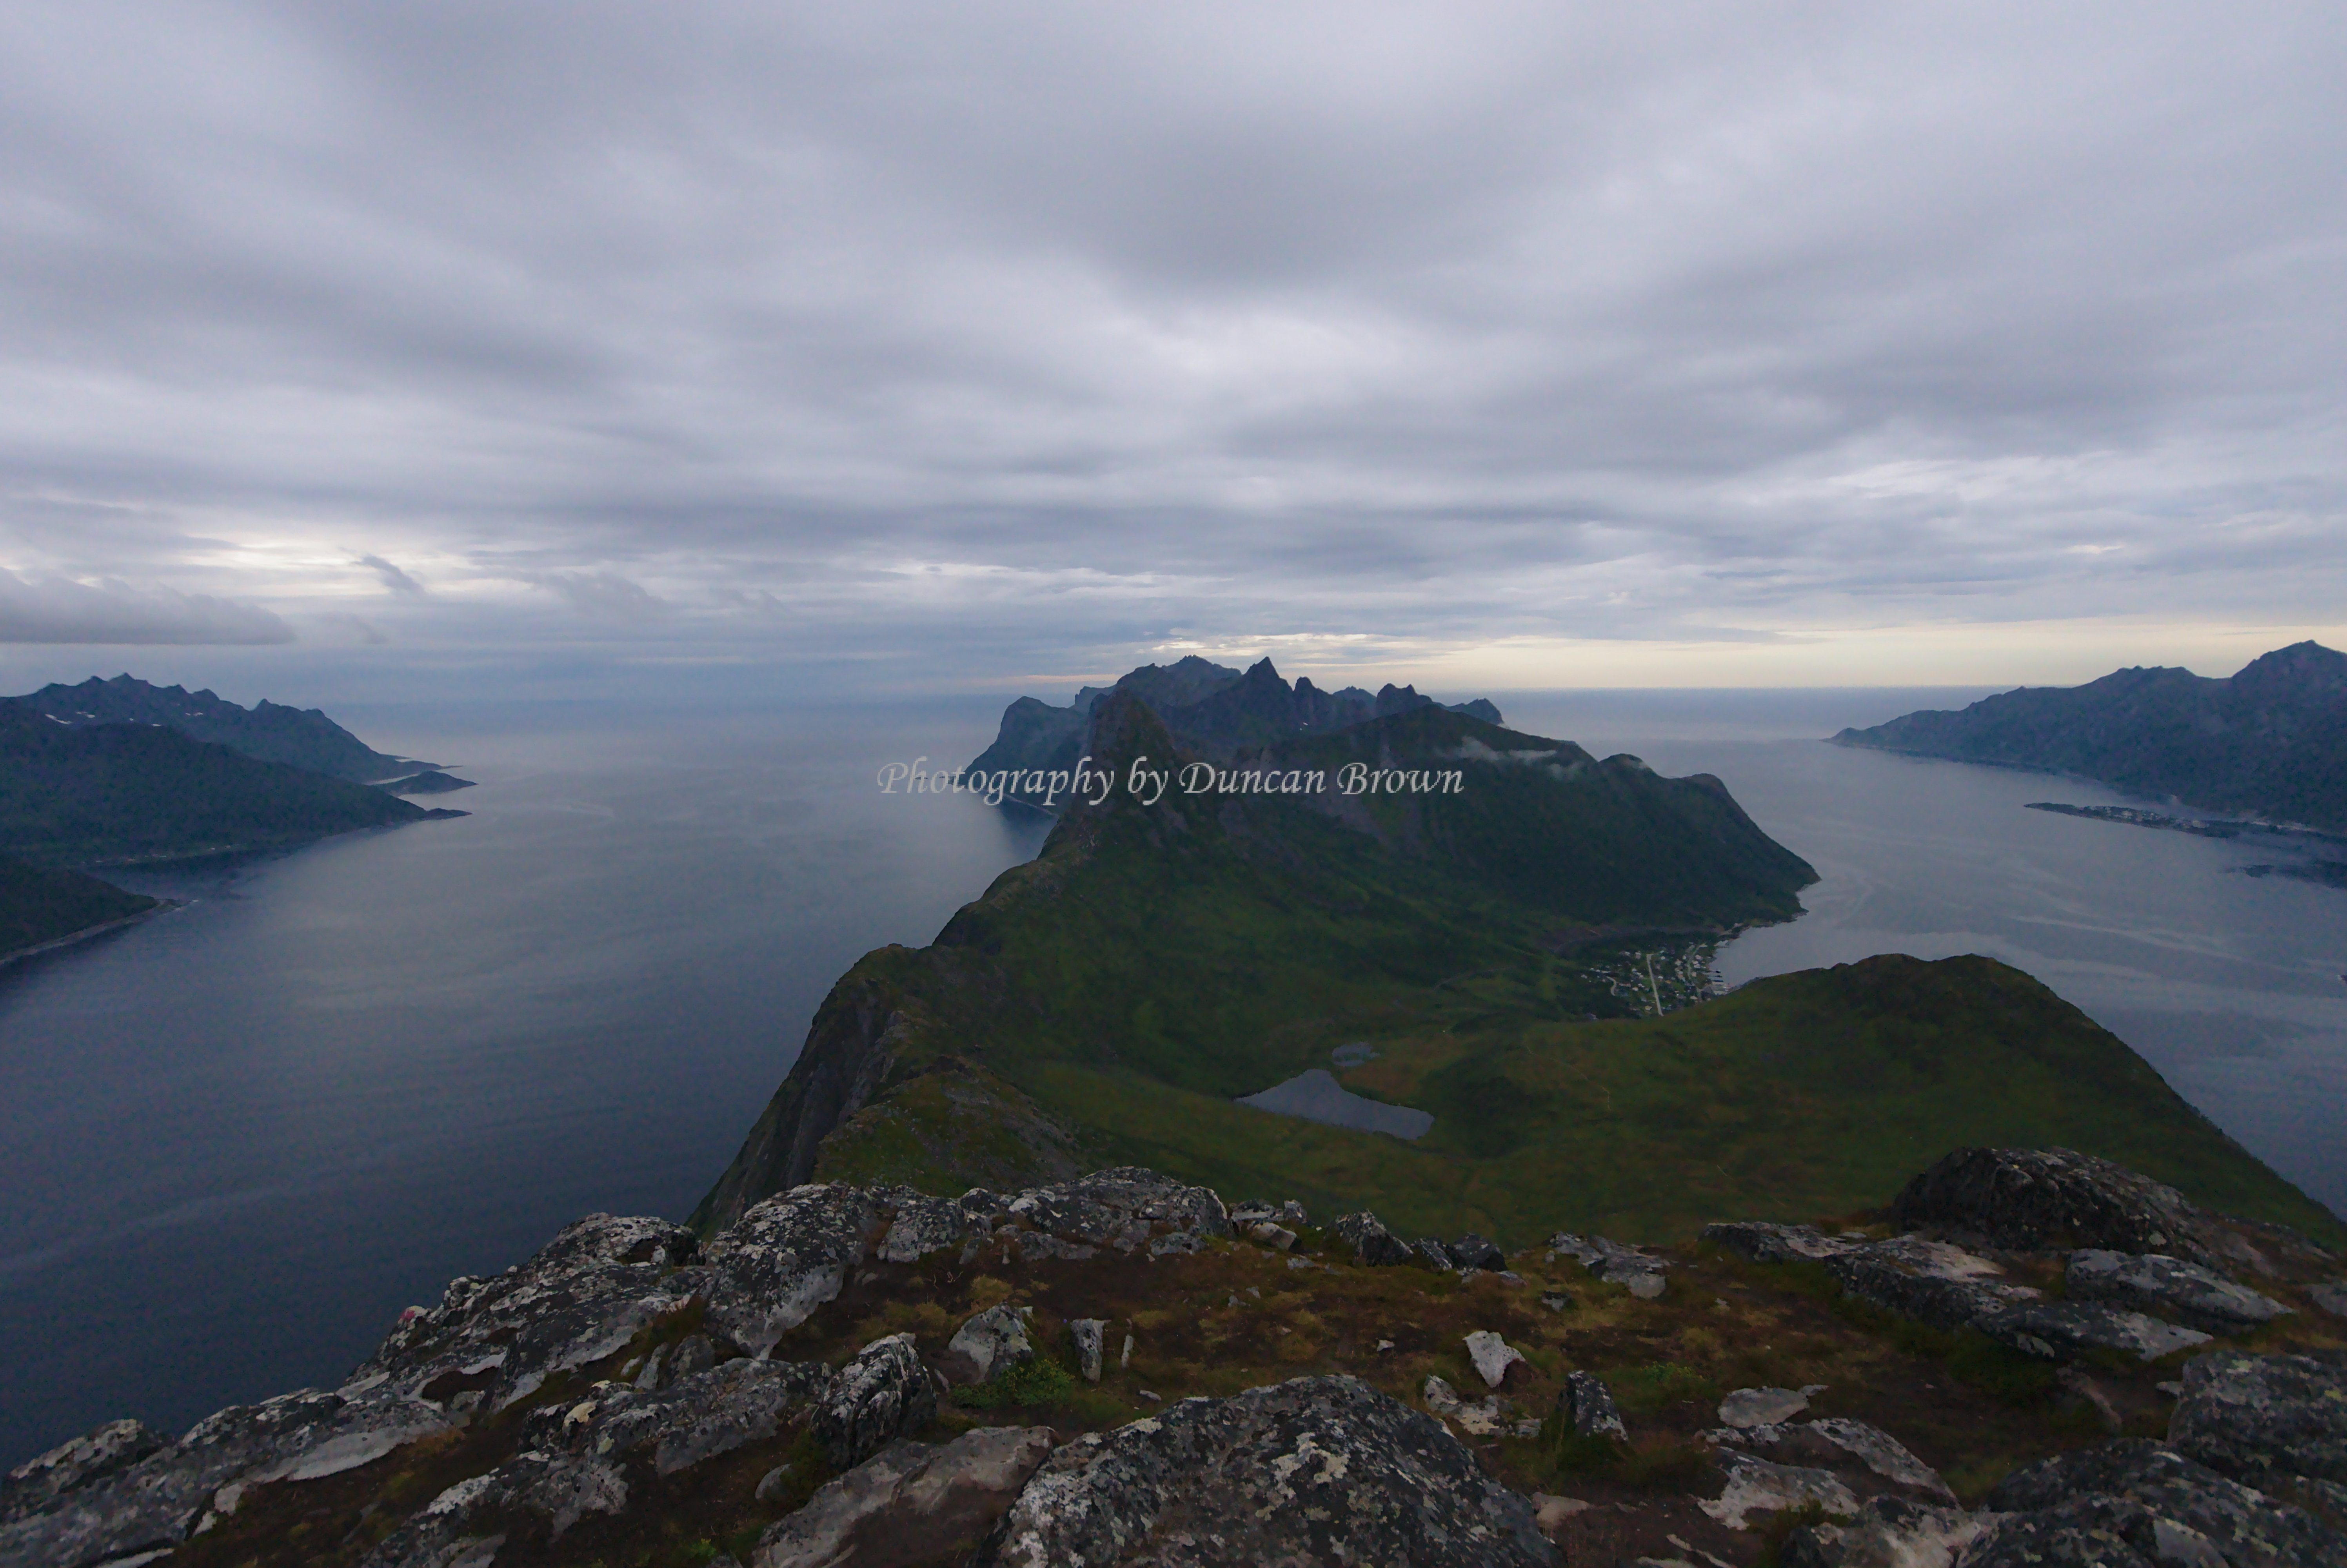 Trip to the Arctic Circle in Scandinavia during the Covid-19 Pandemic – Part 7 – The Stunning Island of Senja